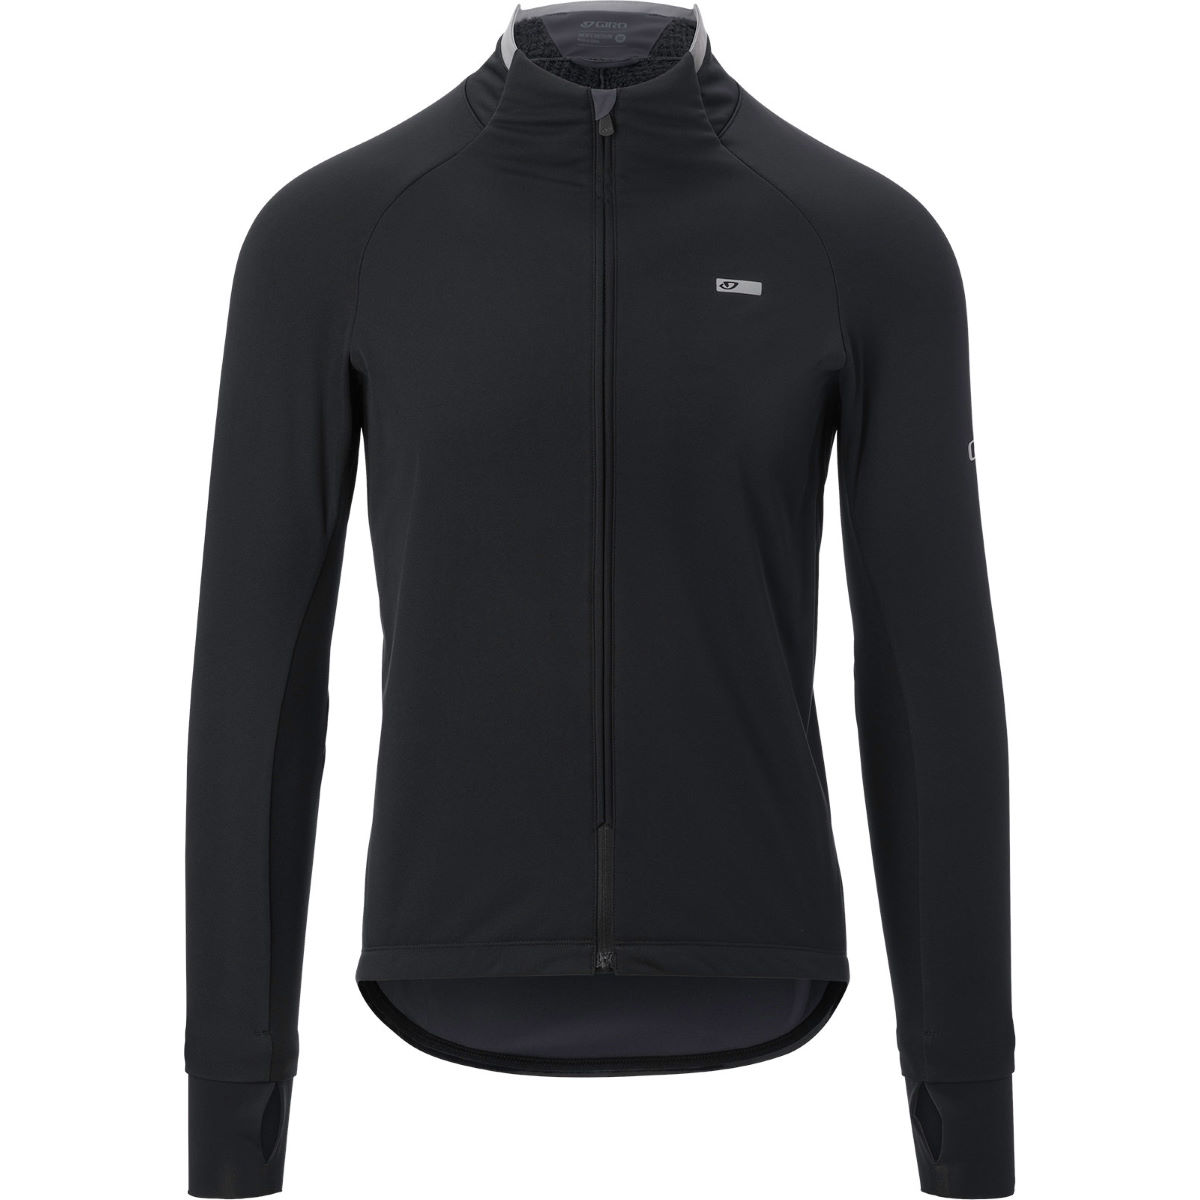 Giro Giro Chrono Pro Alpha® Jacket   Jackets